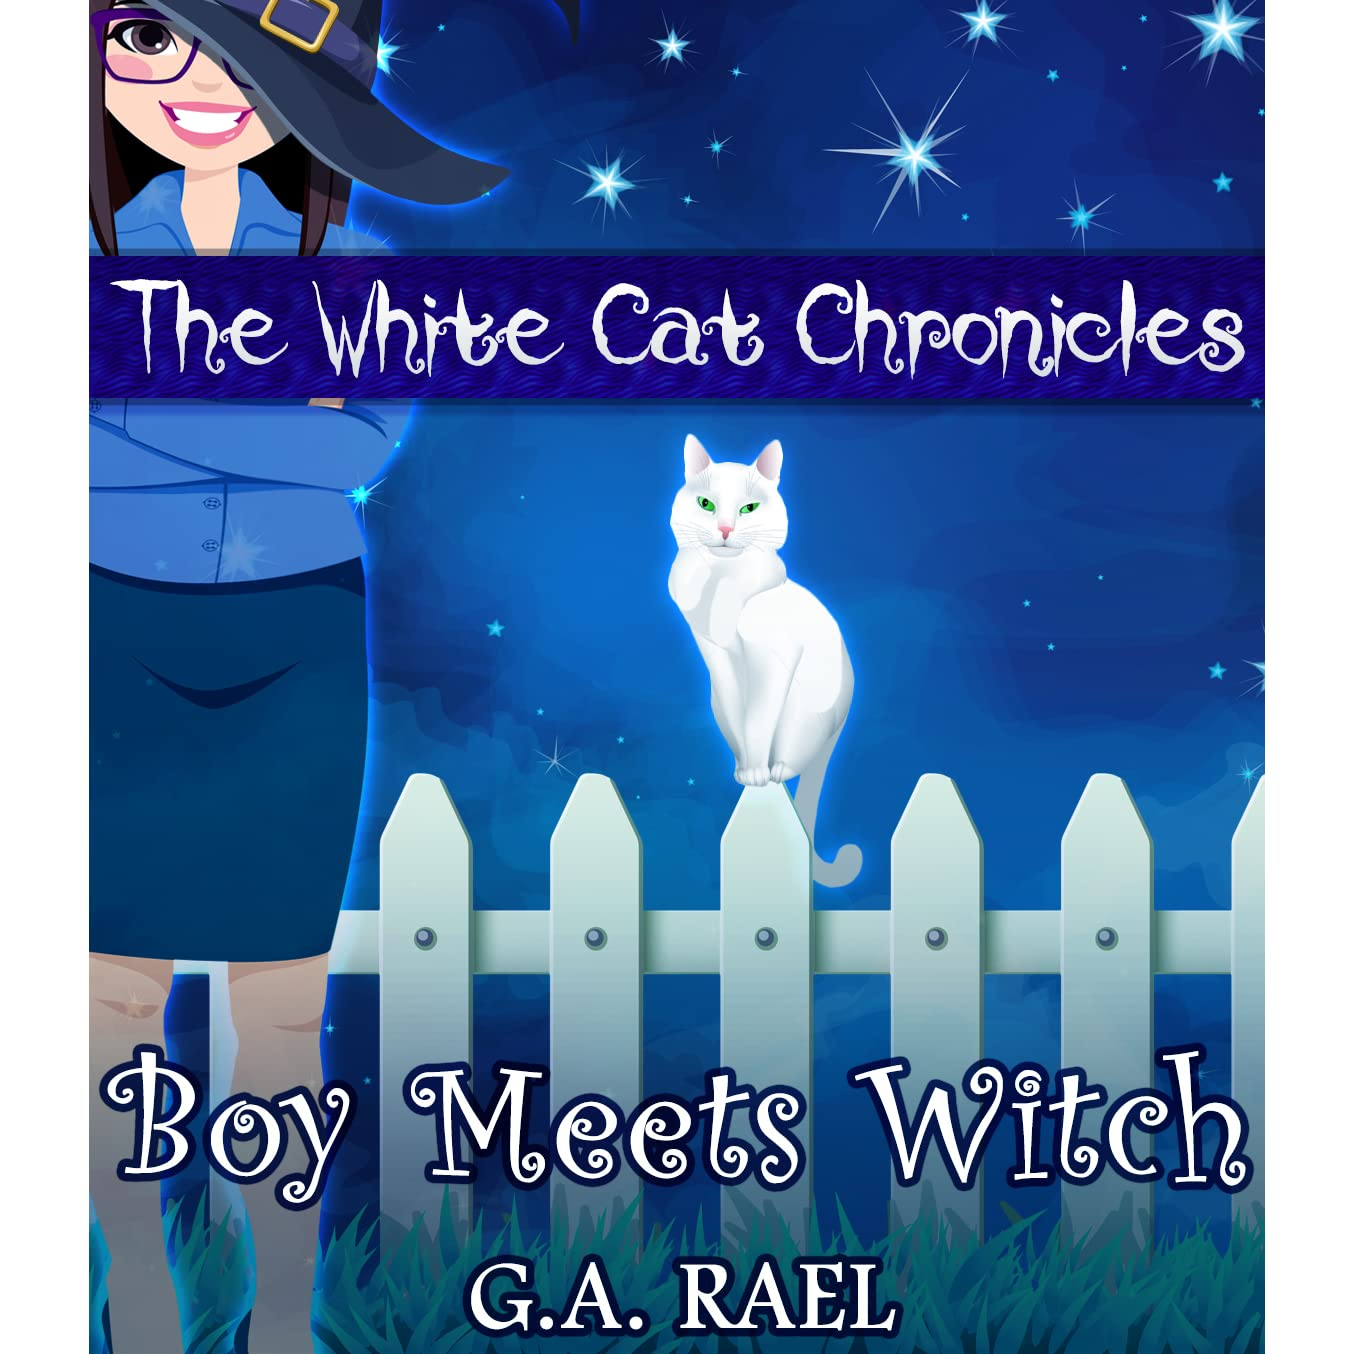 Boy Meets Witch by G.A. Rael